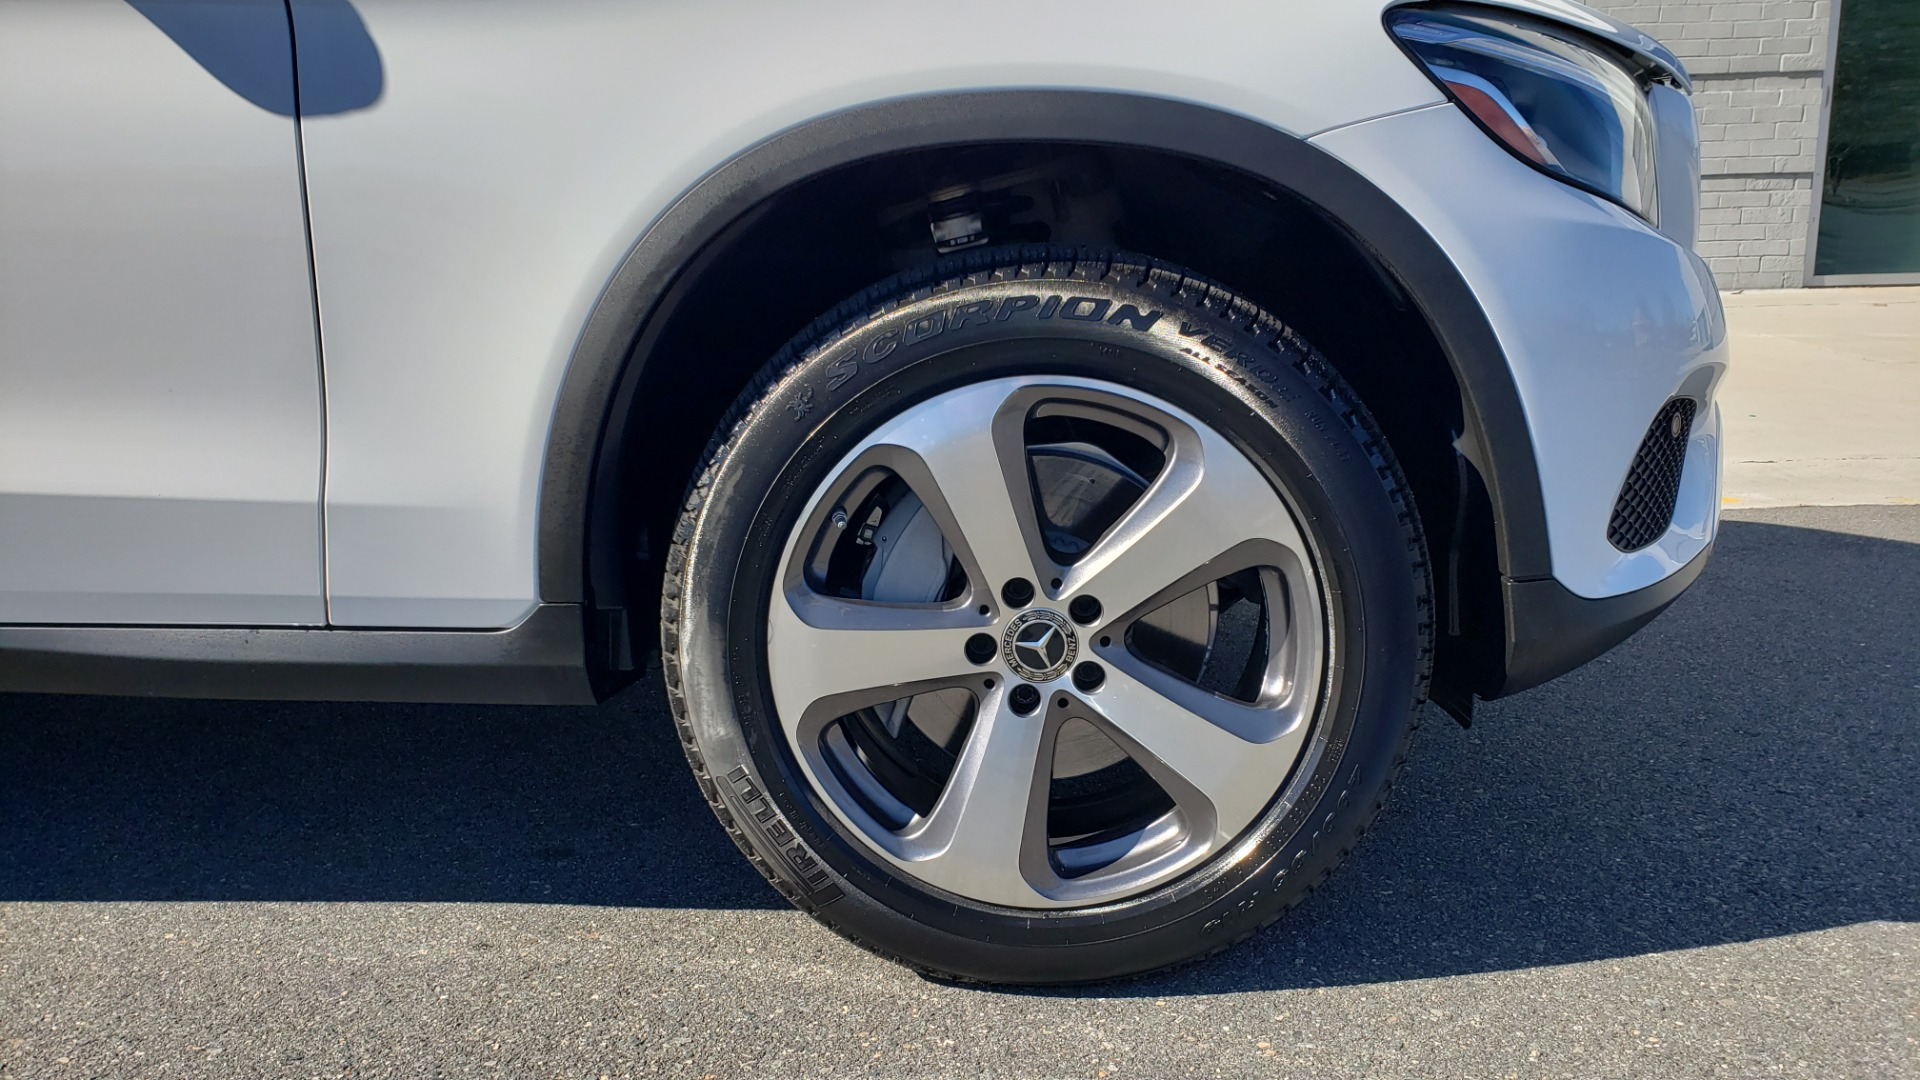 Used 2018 Mercedes-Benz GLC 300 4MATIC / PREM PKG / NAV / SUNROOF / REARVIEW for sale $36,995 at Formula Imports in Charlotte NC 28227 84